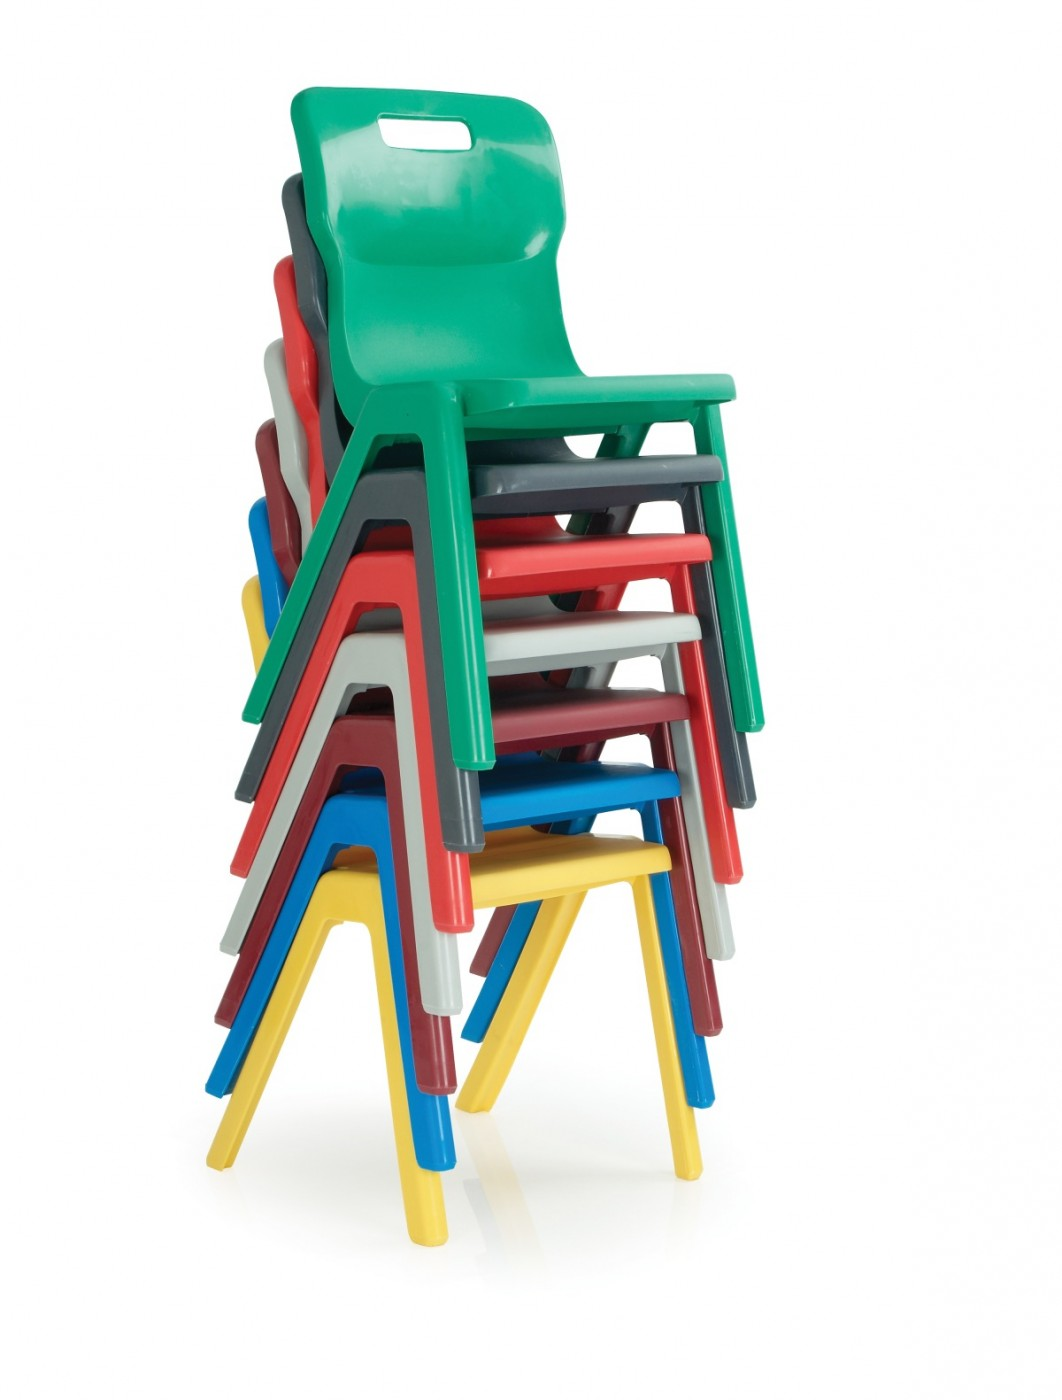 Classroom chairs stacked - Titan One Piece Chair Enlarged View